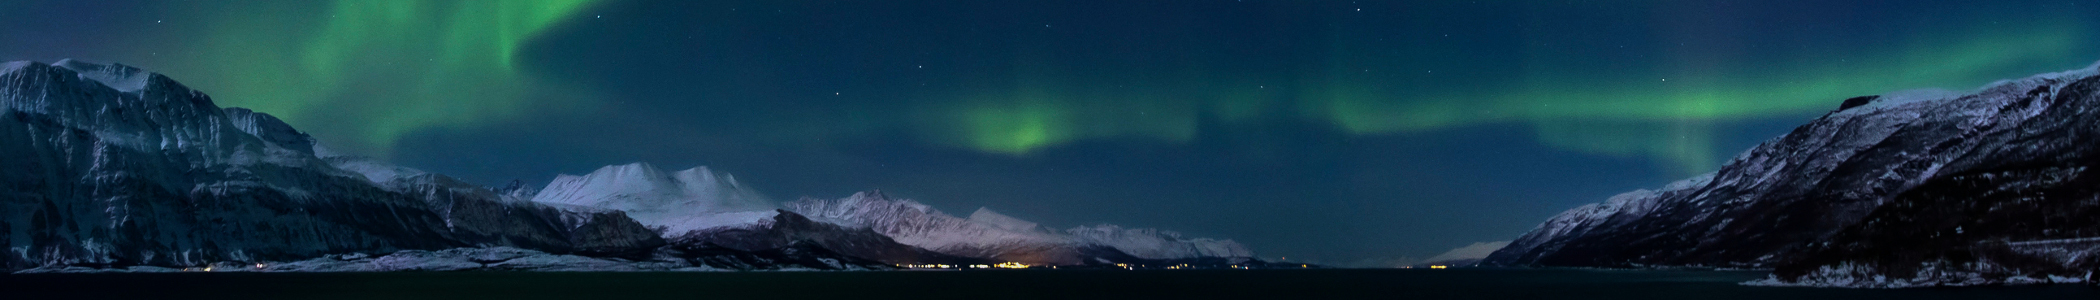 Northern_Lights-banner1